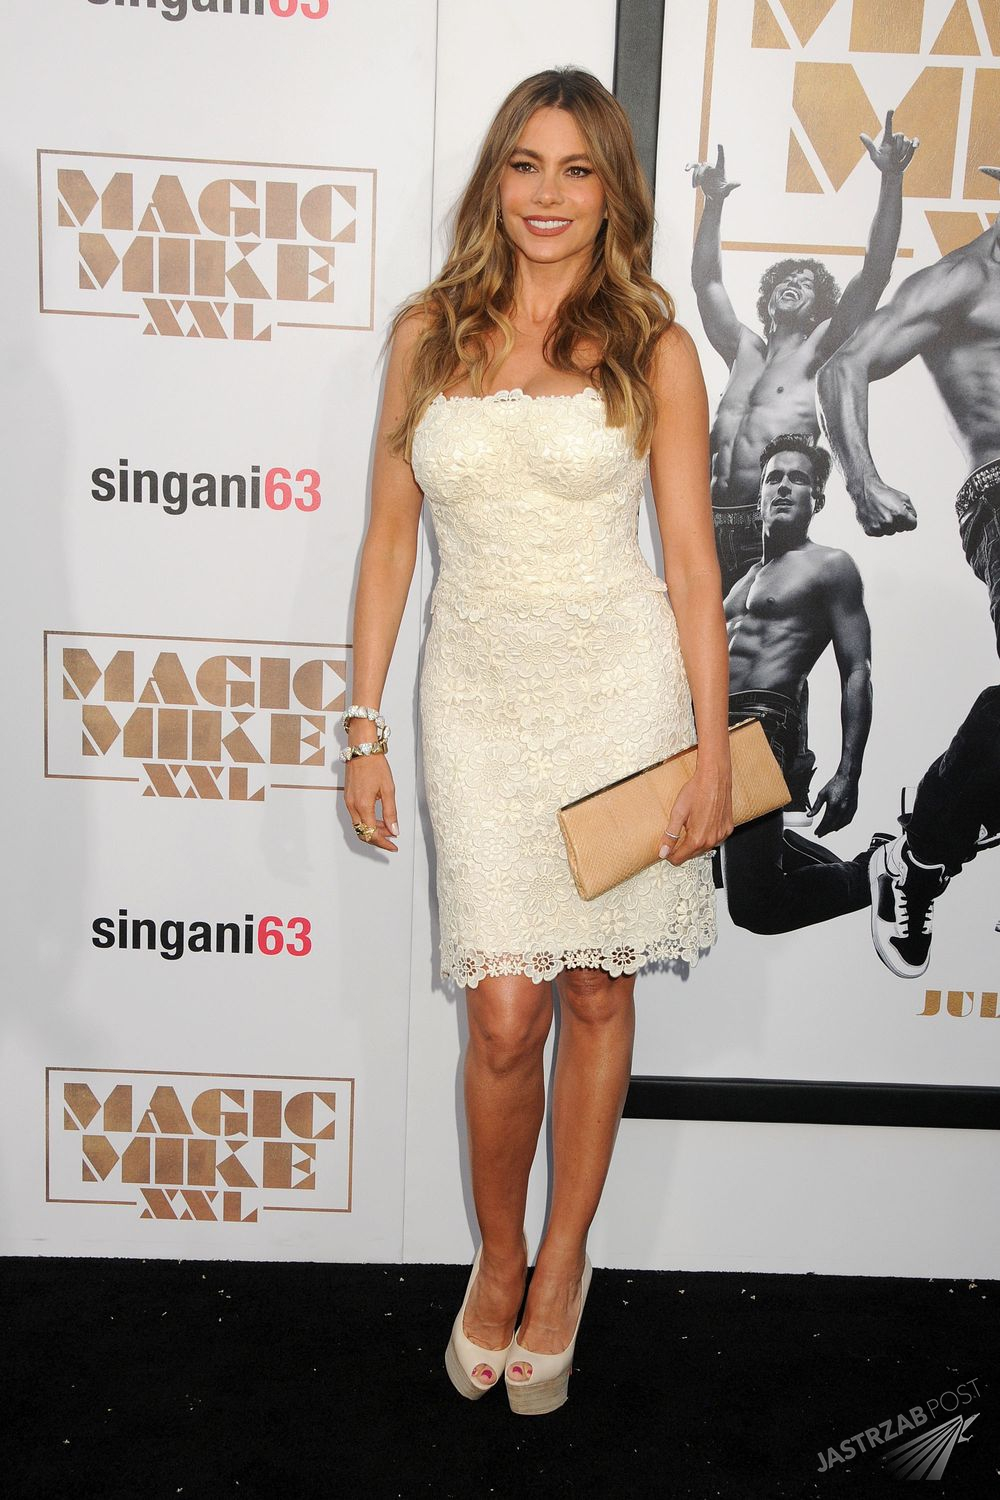 "25 June 2015 - Hollywood, California - Sofia Vergara. ""Magic Mike XXL"" Los Angeles Premiere held at the TCL Chinese Theatre. CAP/ADM/BP ÃByron Purvis/AdMedia/Capital Pictures"